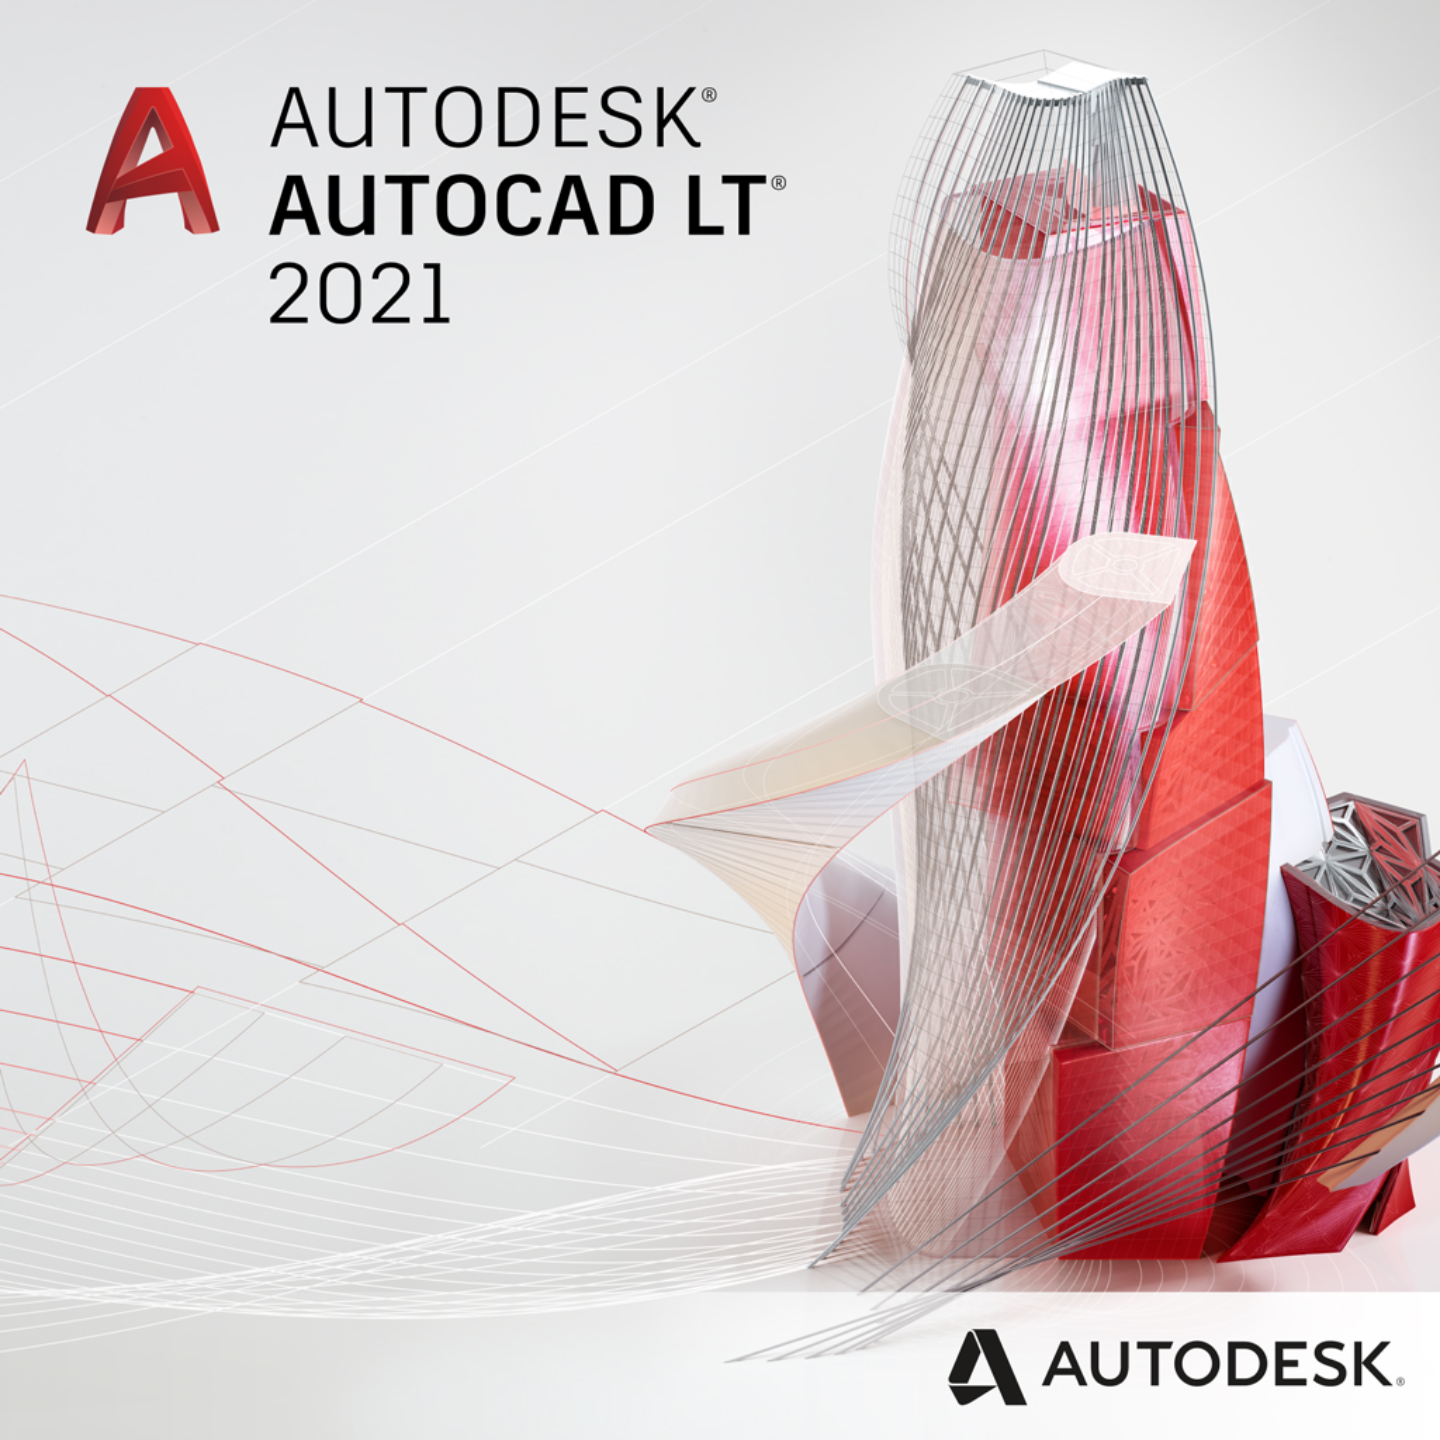 Autodesk Autocad LT 2021 1-Year Subscription